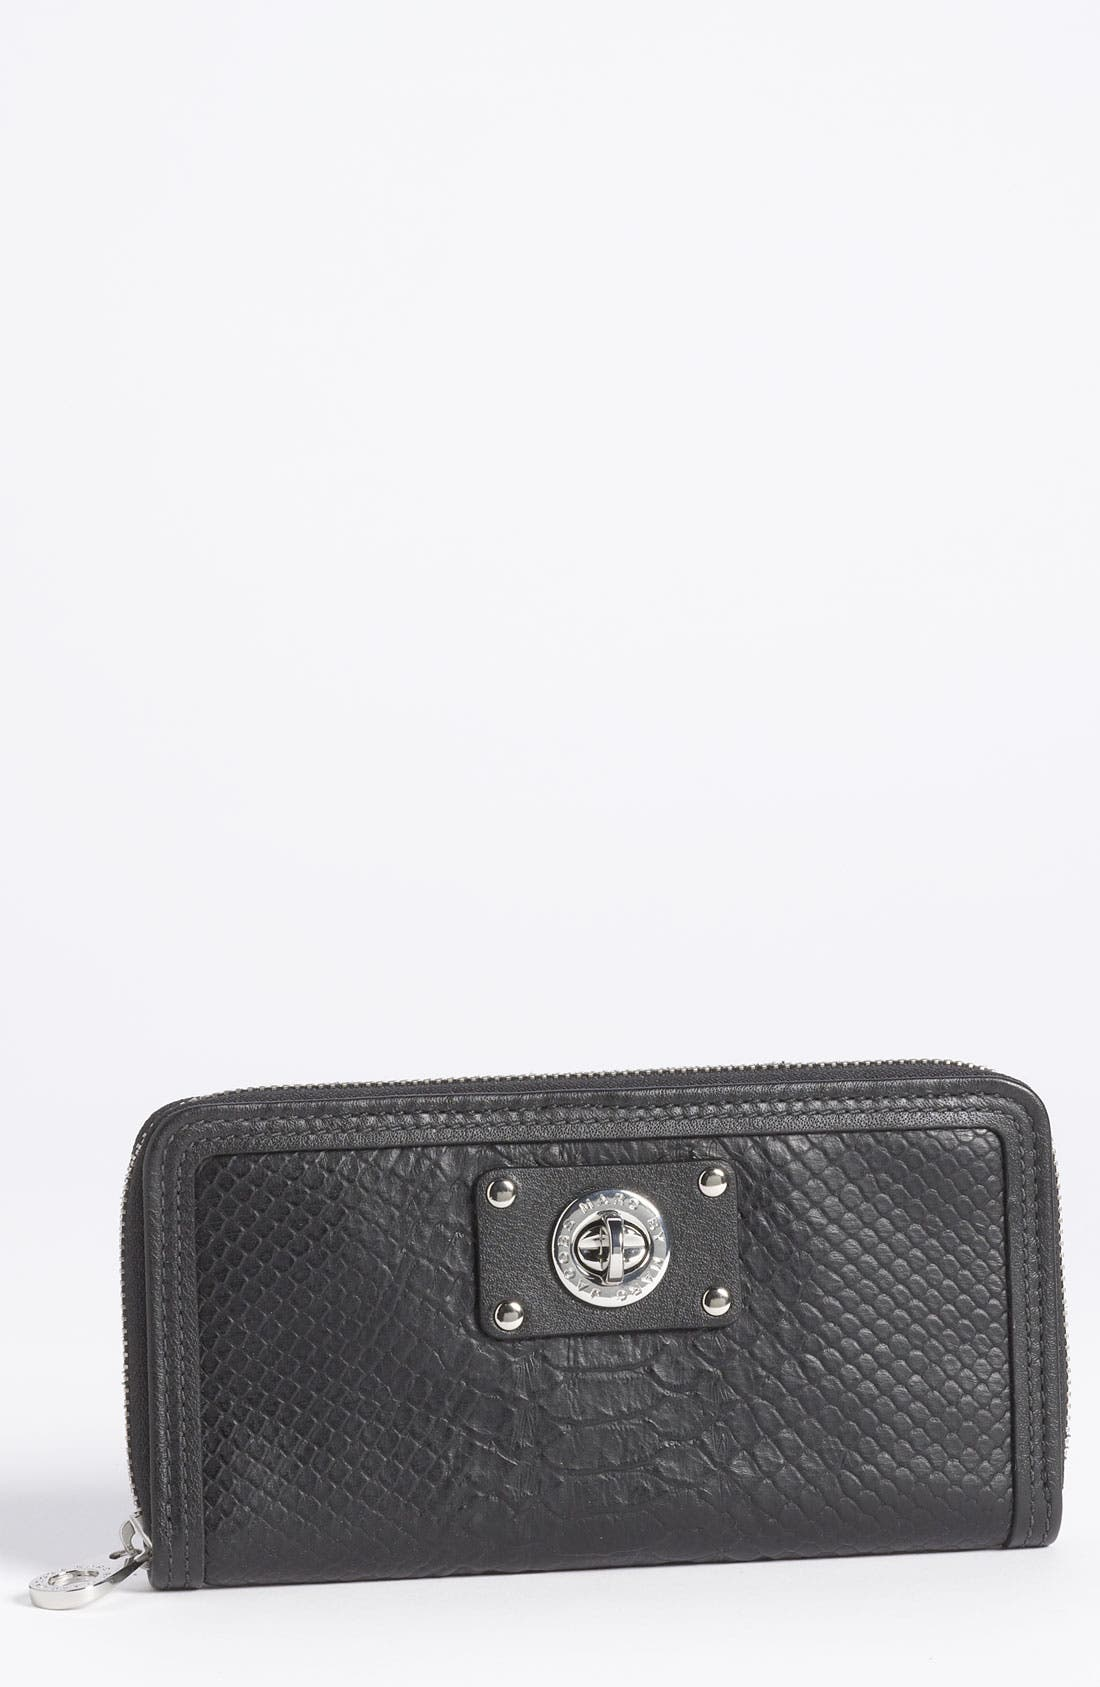 Alternate Image 1 Selected - MARC BY MARC JACOBS 'Vertical Zippy' Python Embossed Wallet